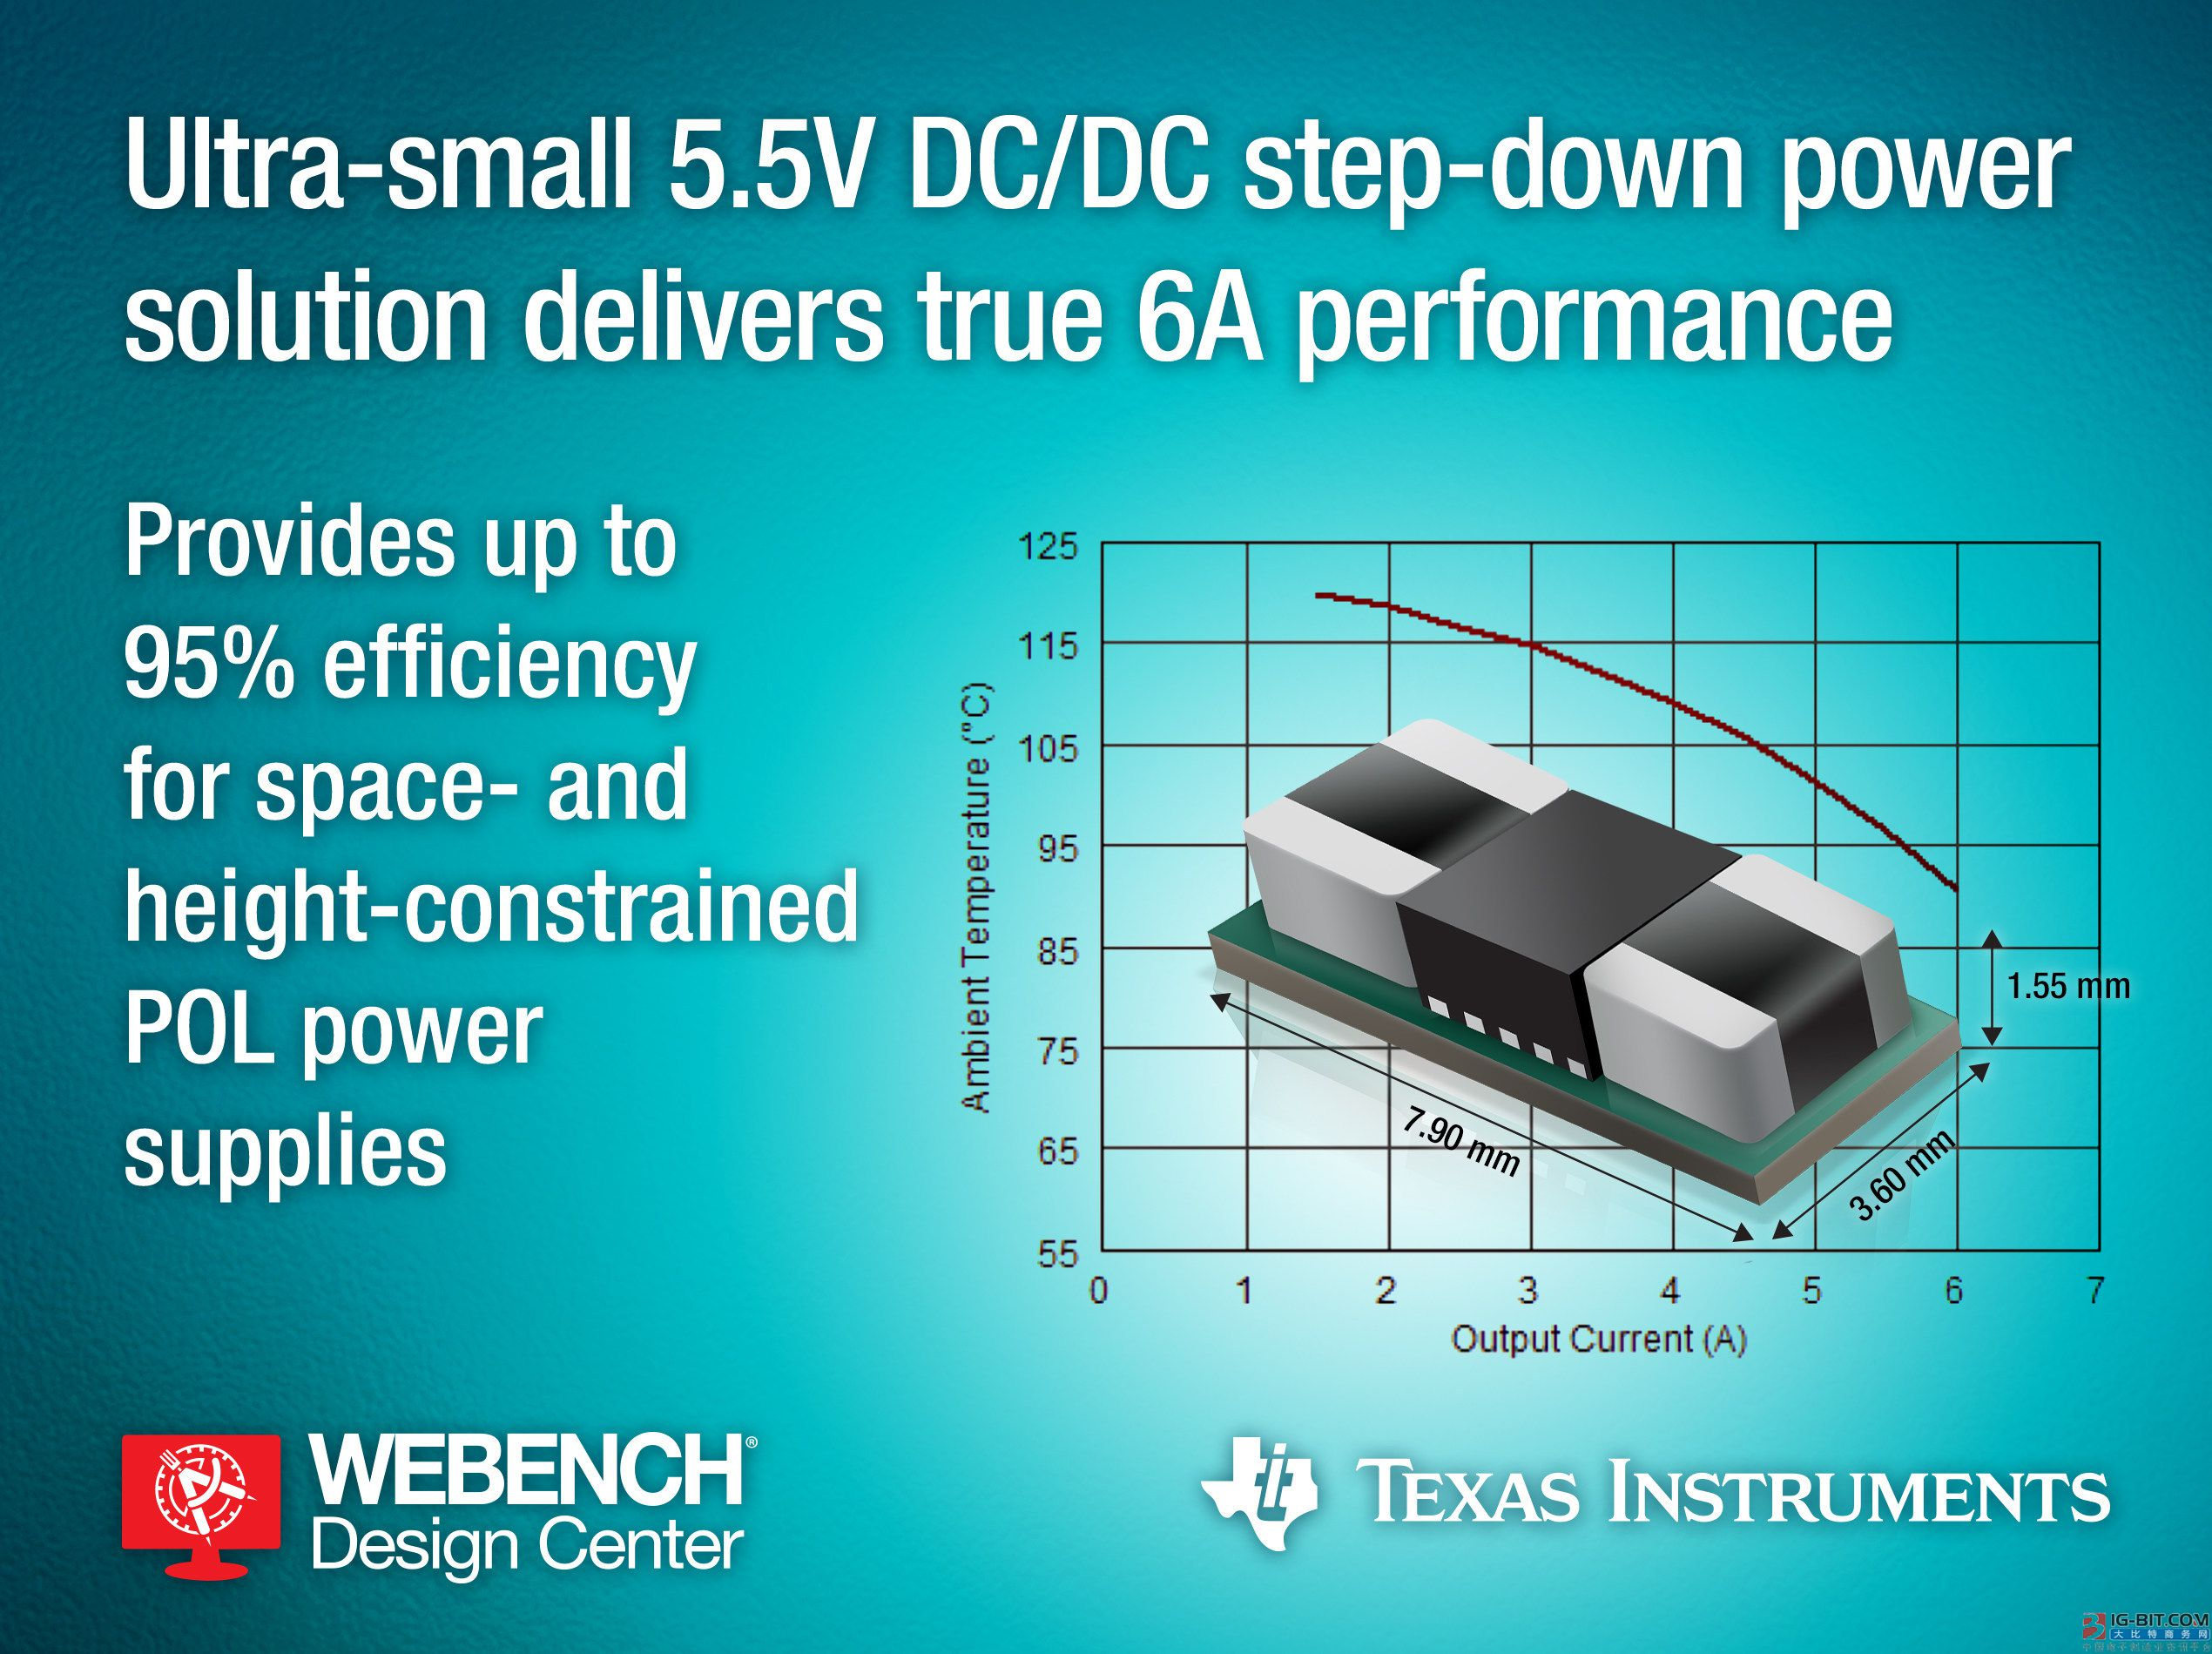 TI exceeds module of power source of step-down of small-sized 5.5V DC/DC to realize real 6A property